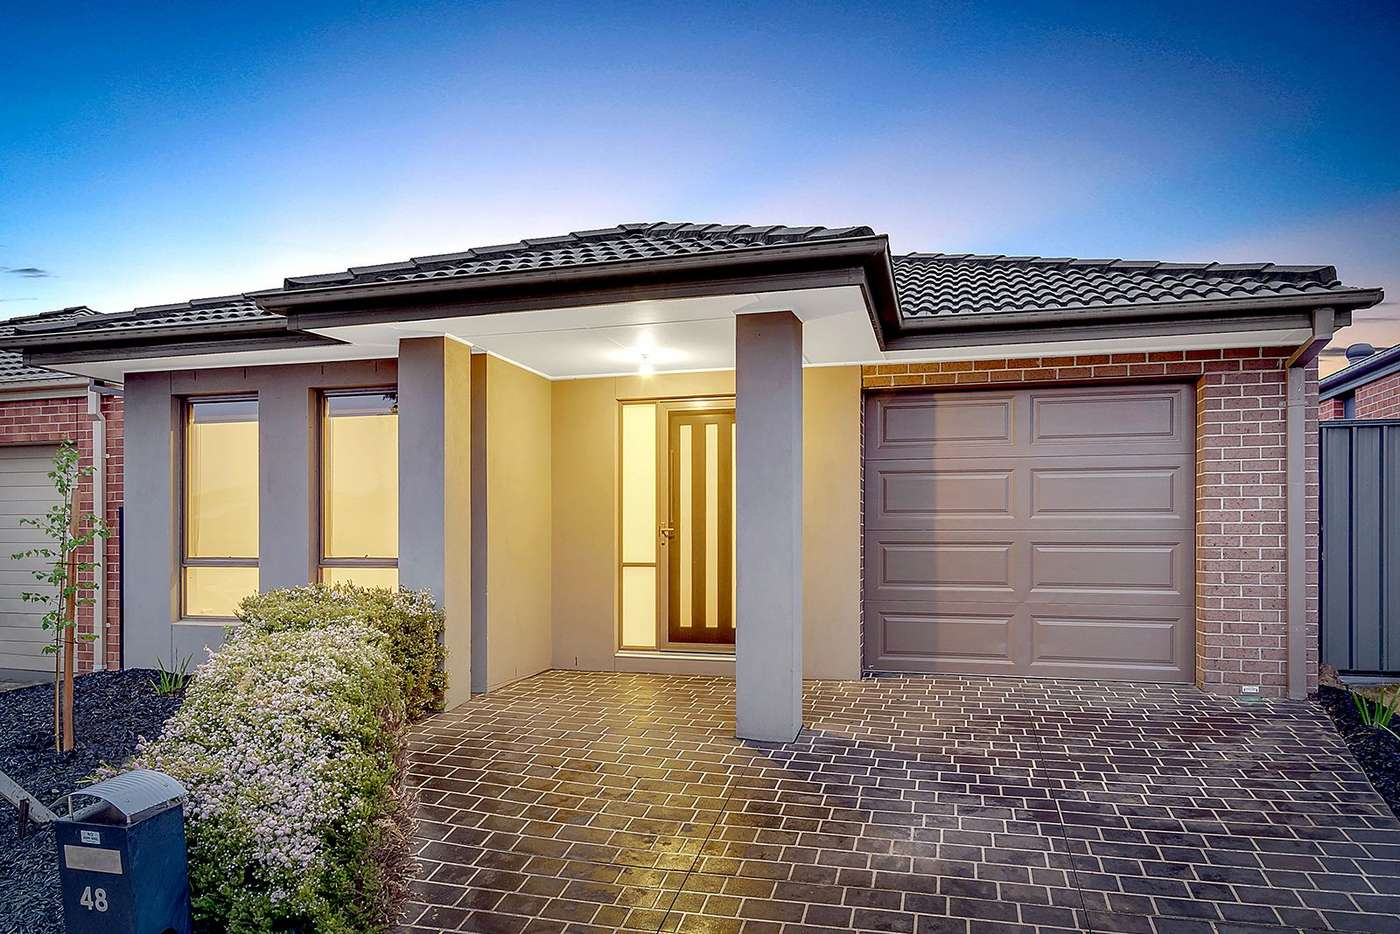 Main view of Homely house listing, 48 Moor Park Drive, Craigieburn VIC 3064